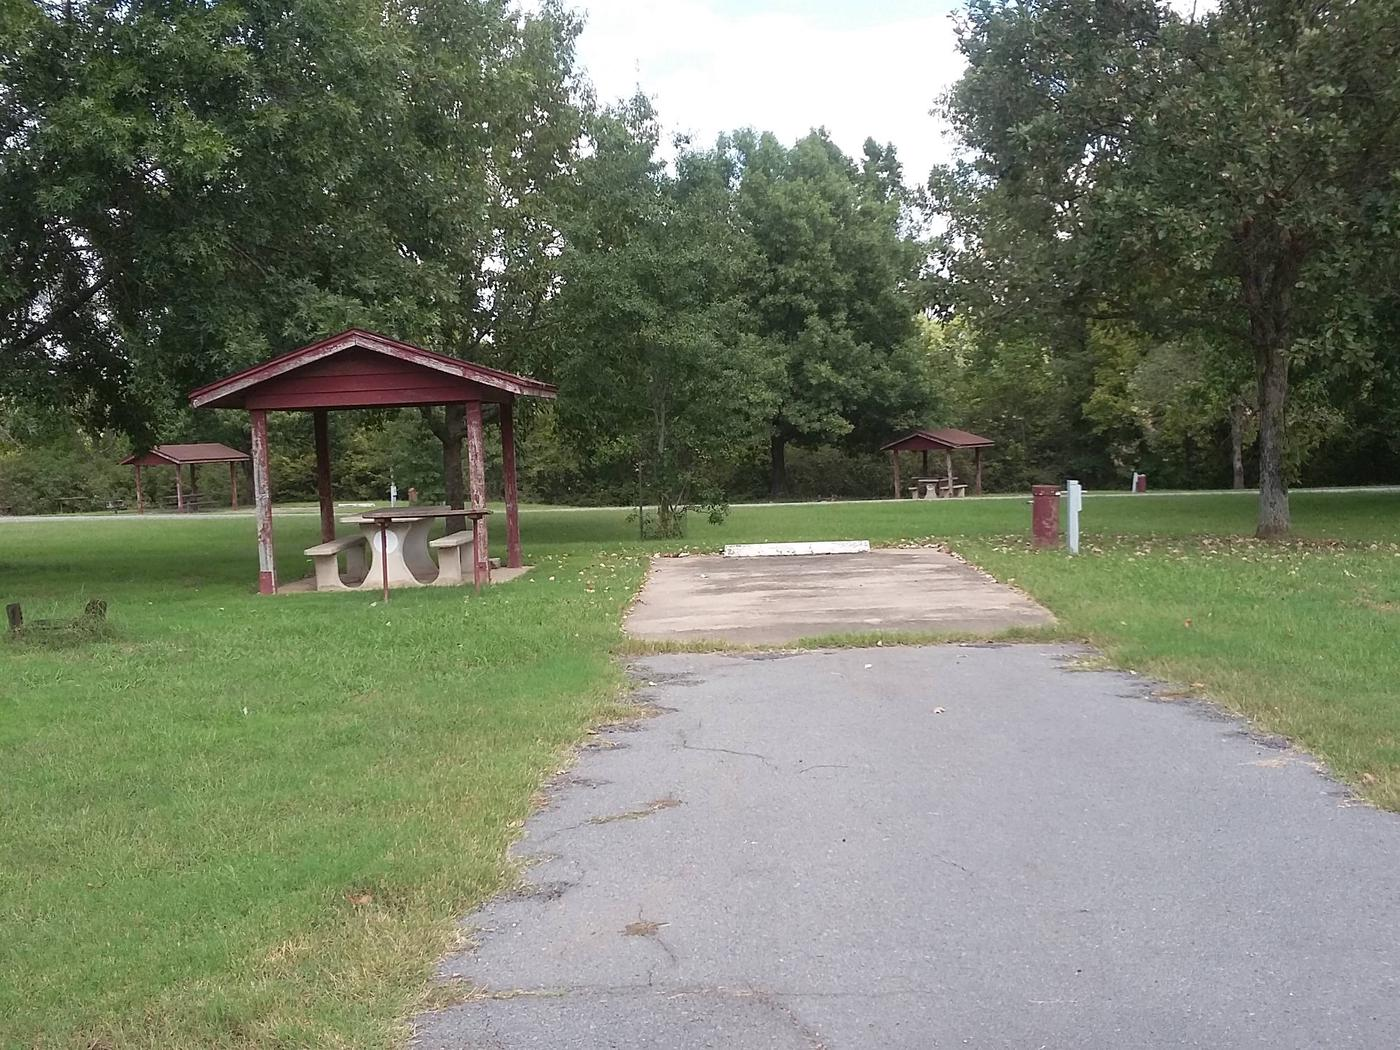 100 Yards to Shower/Restroom. 300 Yards to Arkansas River Access.Site 1